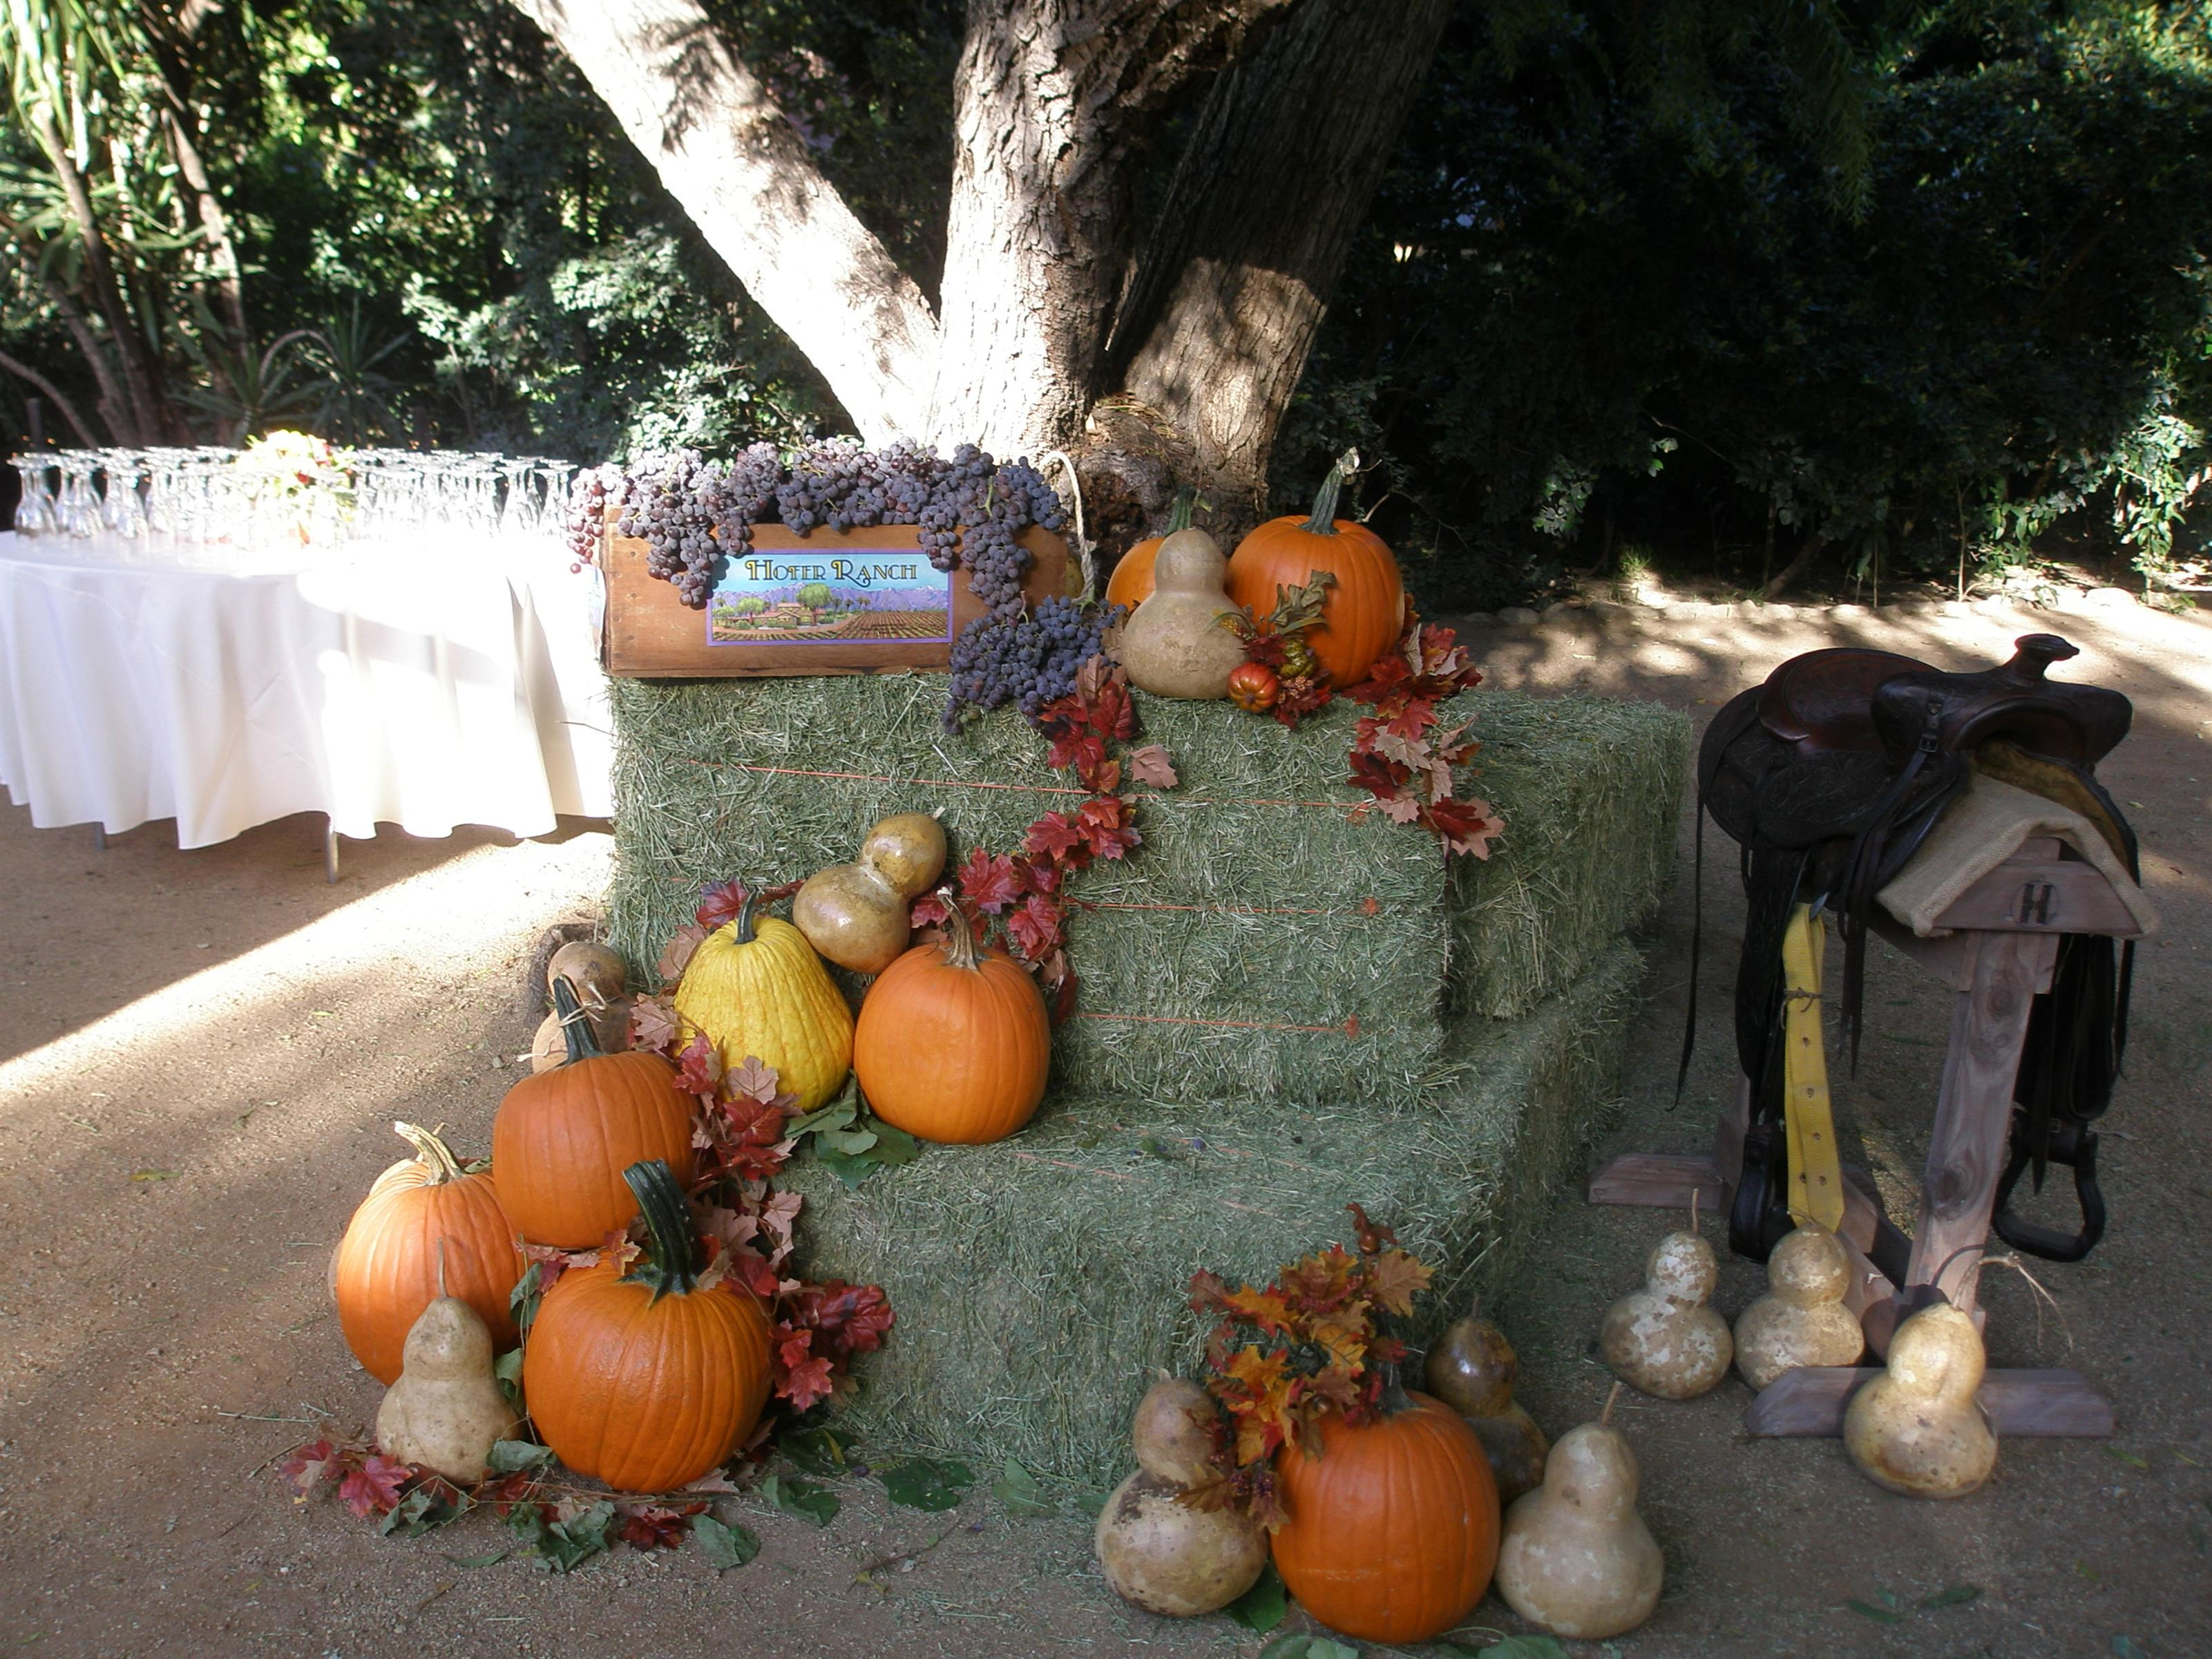 Pumpkins and gourds on hay bales at Hofer Ranch